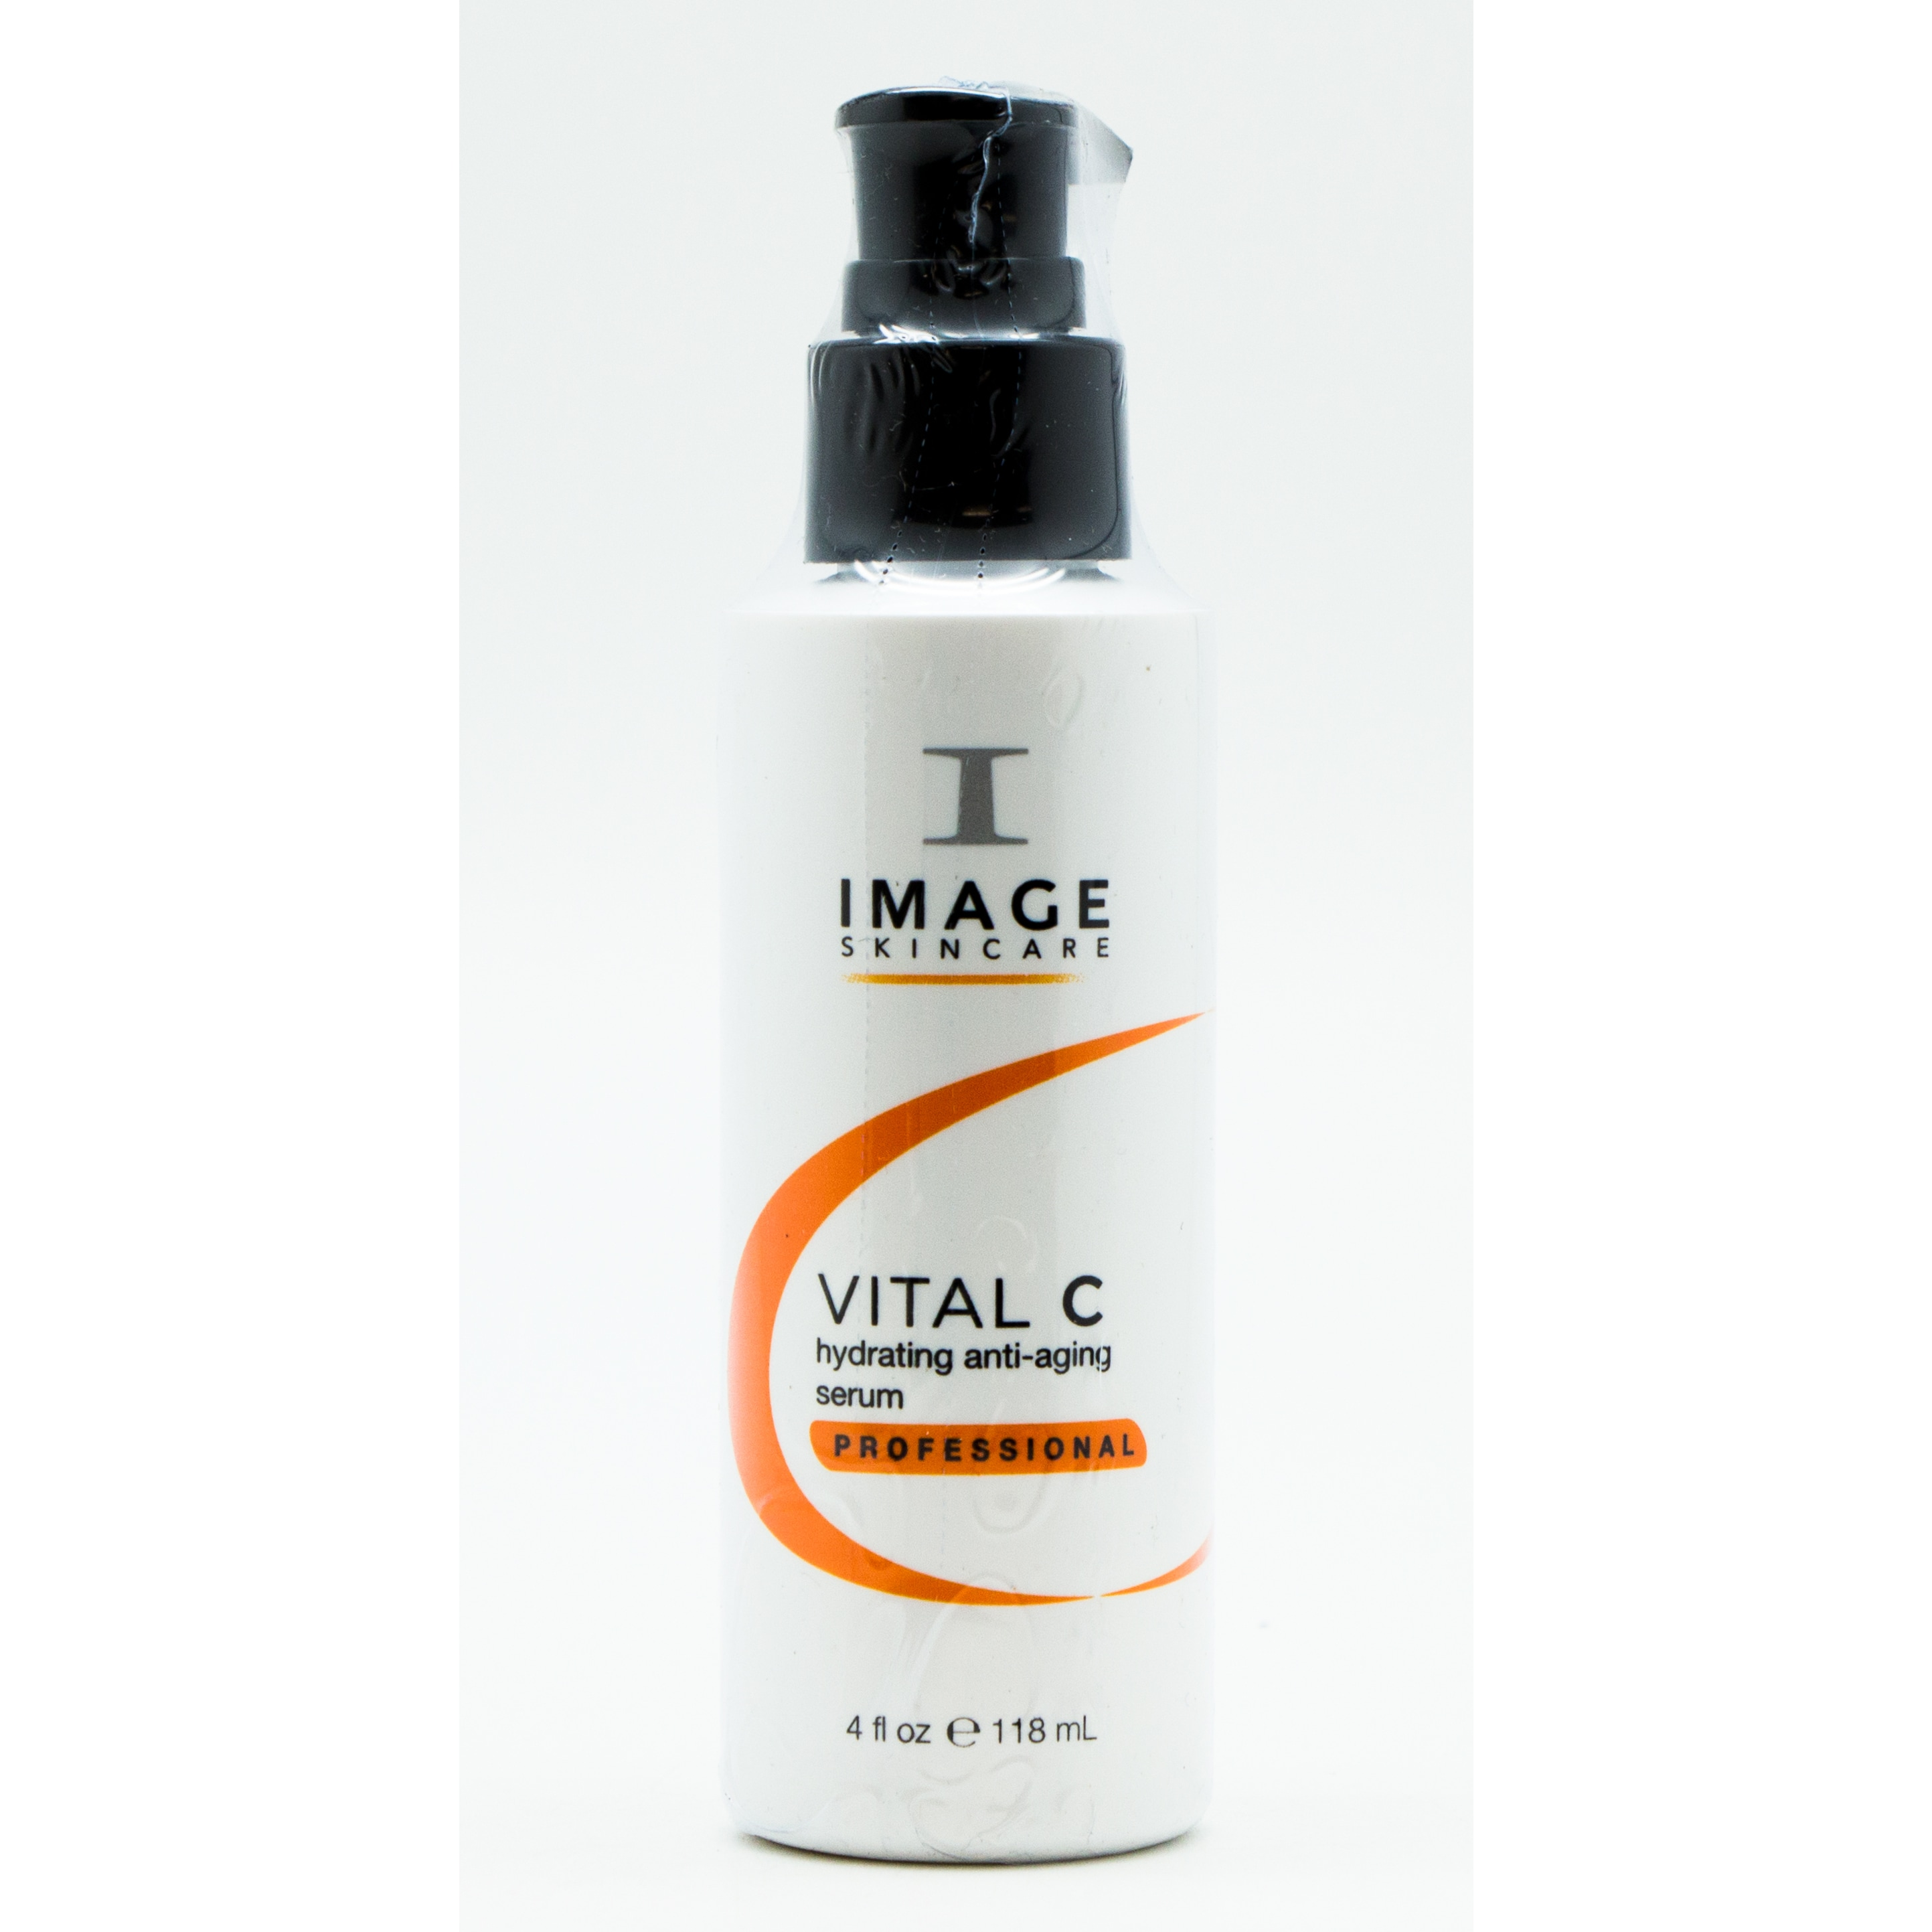 Shop Image Skincare Vital C Hydrating 4 Ounce Anti Aging Serum